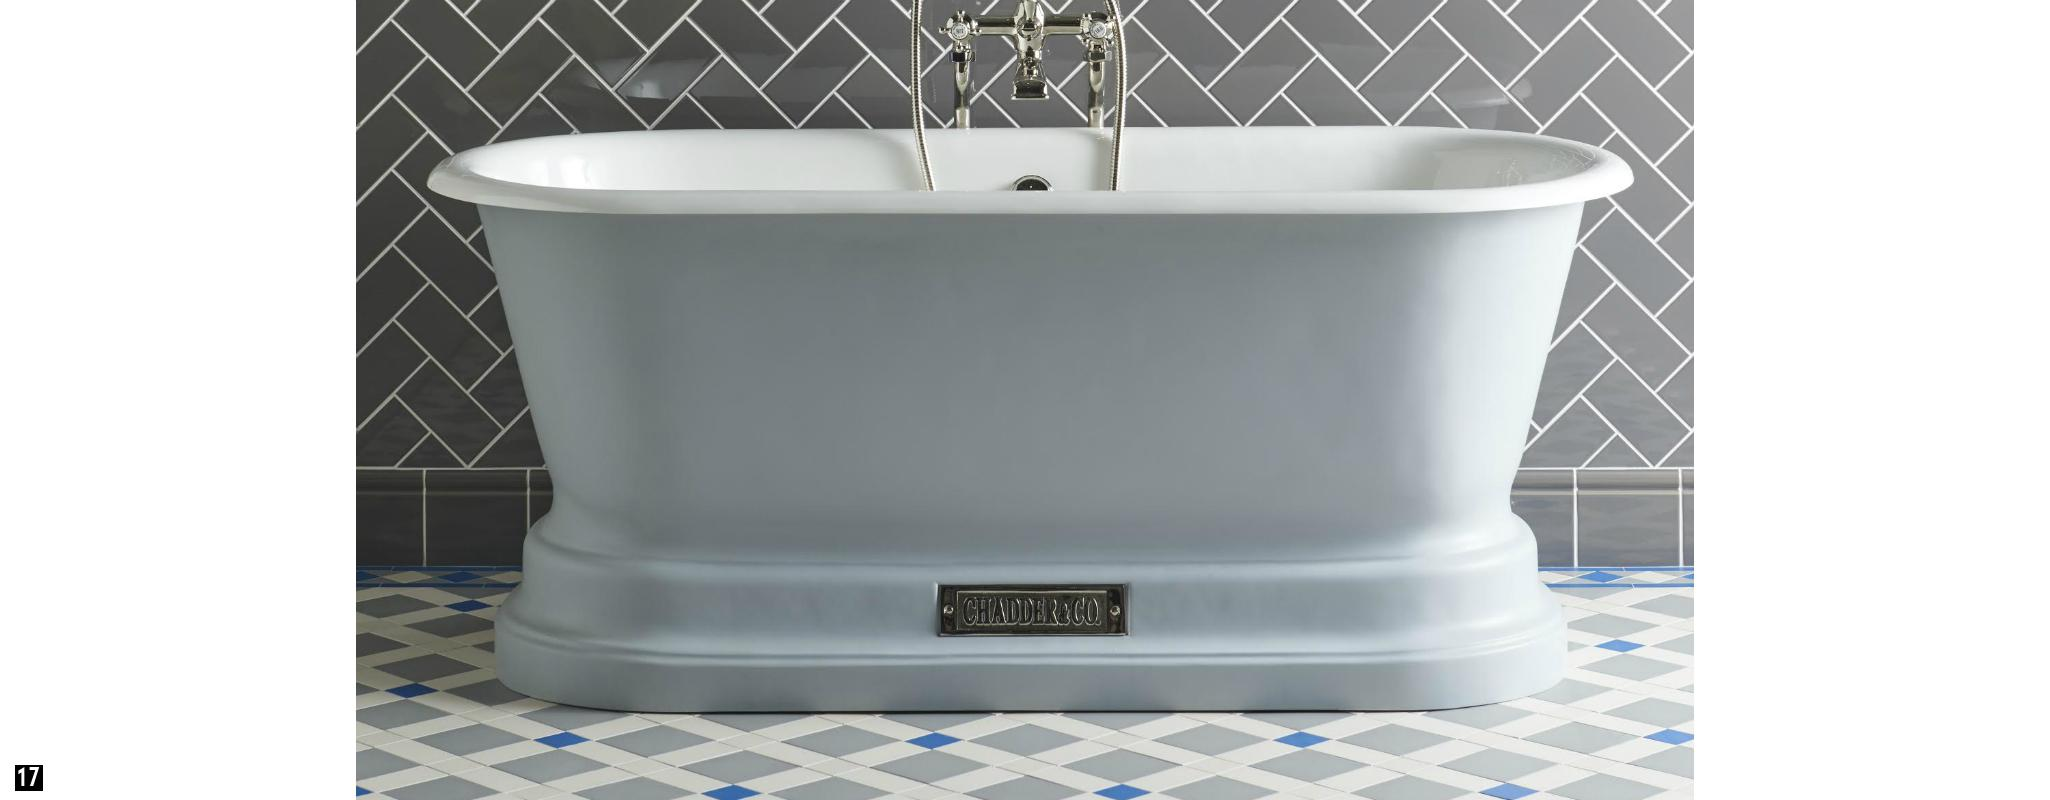 Bespoke Cisterns and Bathrooms , Chadite , Chadder Baths, Roll Top Baths